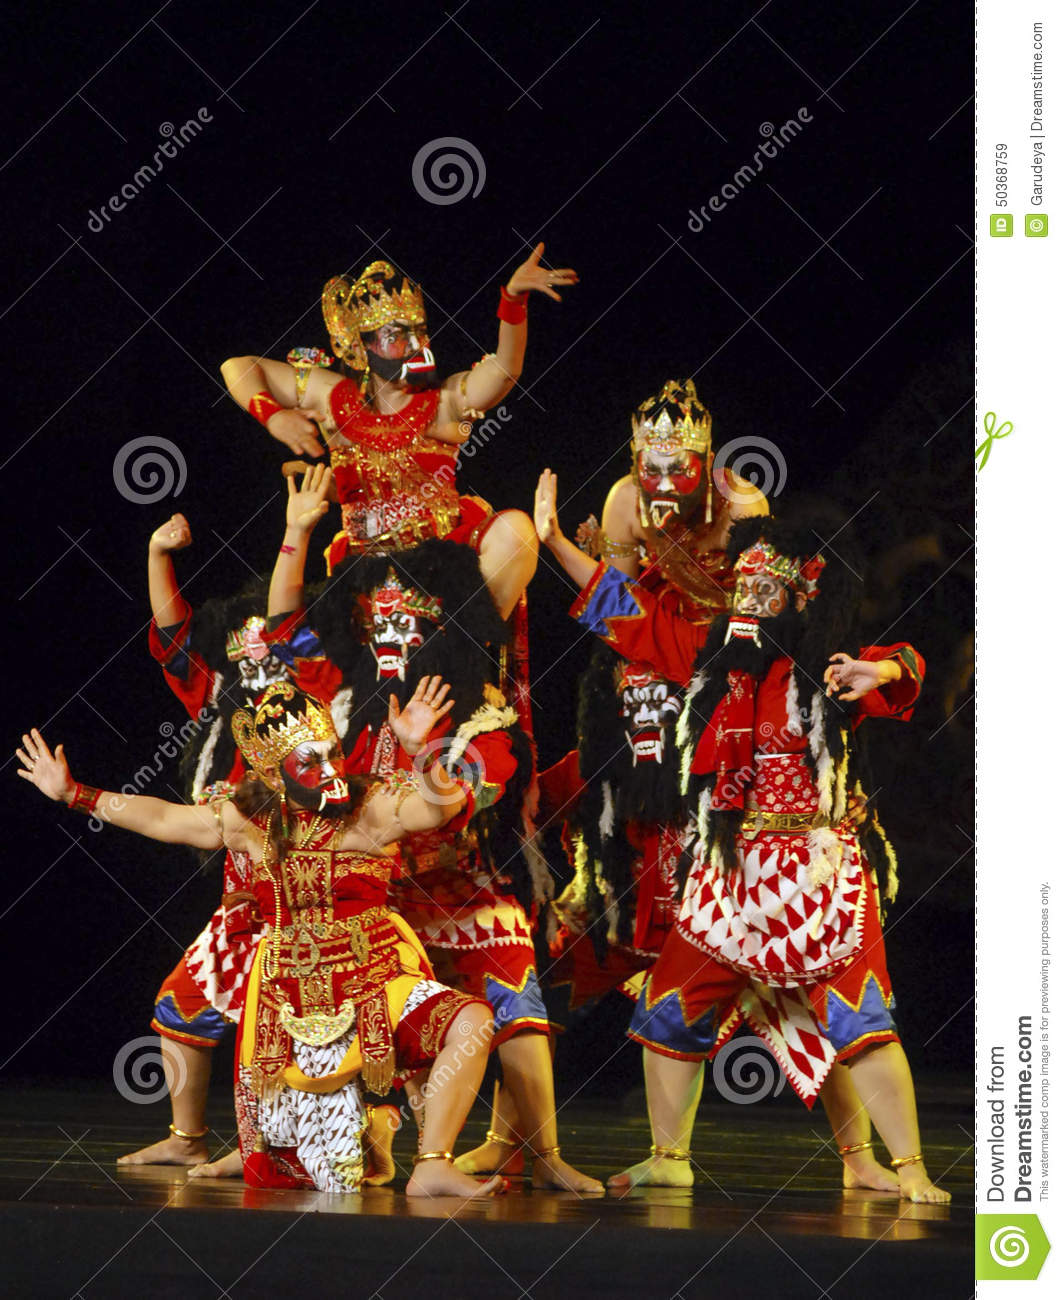 INDONESIA WAYANG WONG PERFORMANCE THEATRICAL DANCE CULTURE Editorial Stock Image  Image of